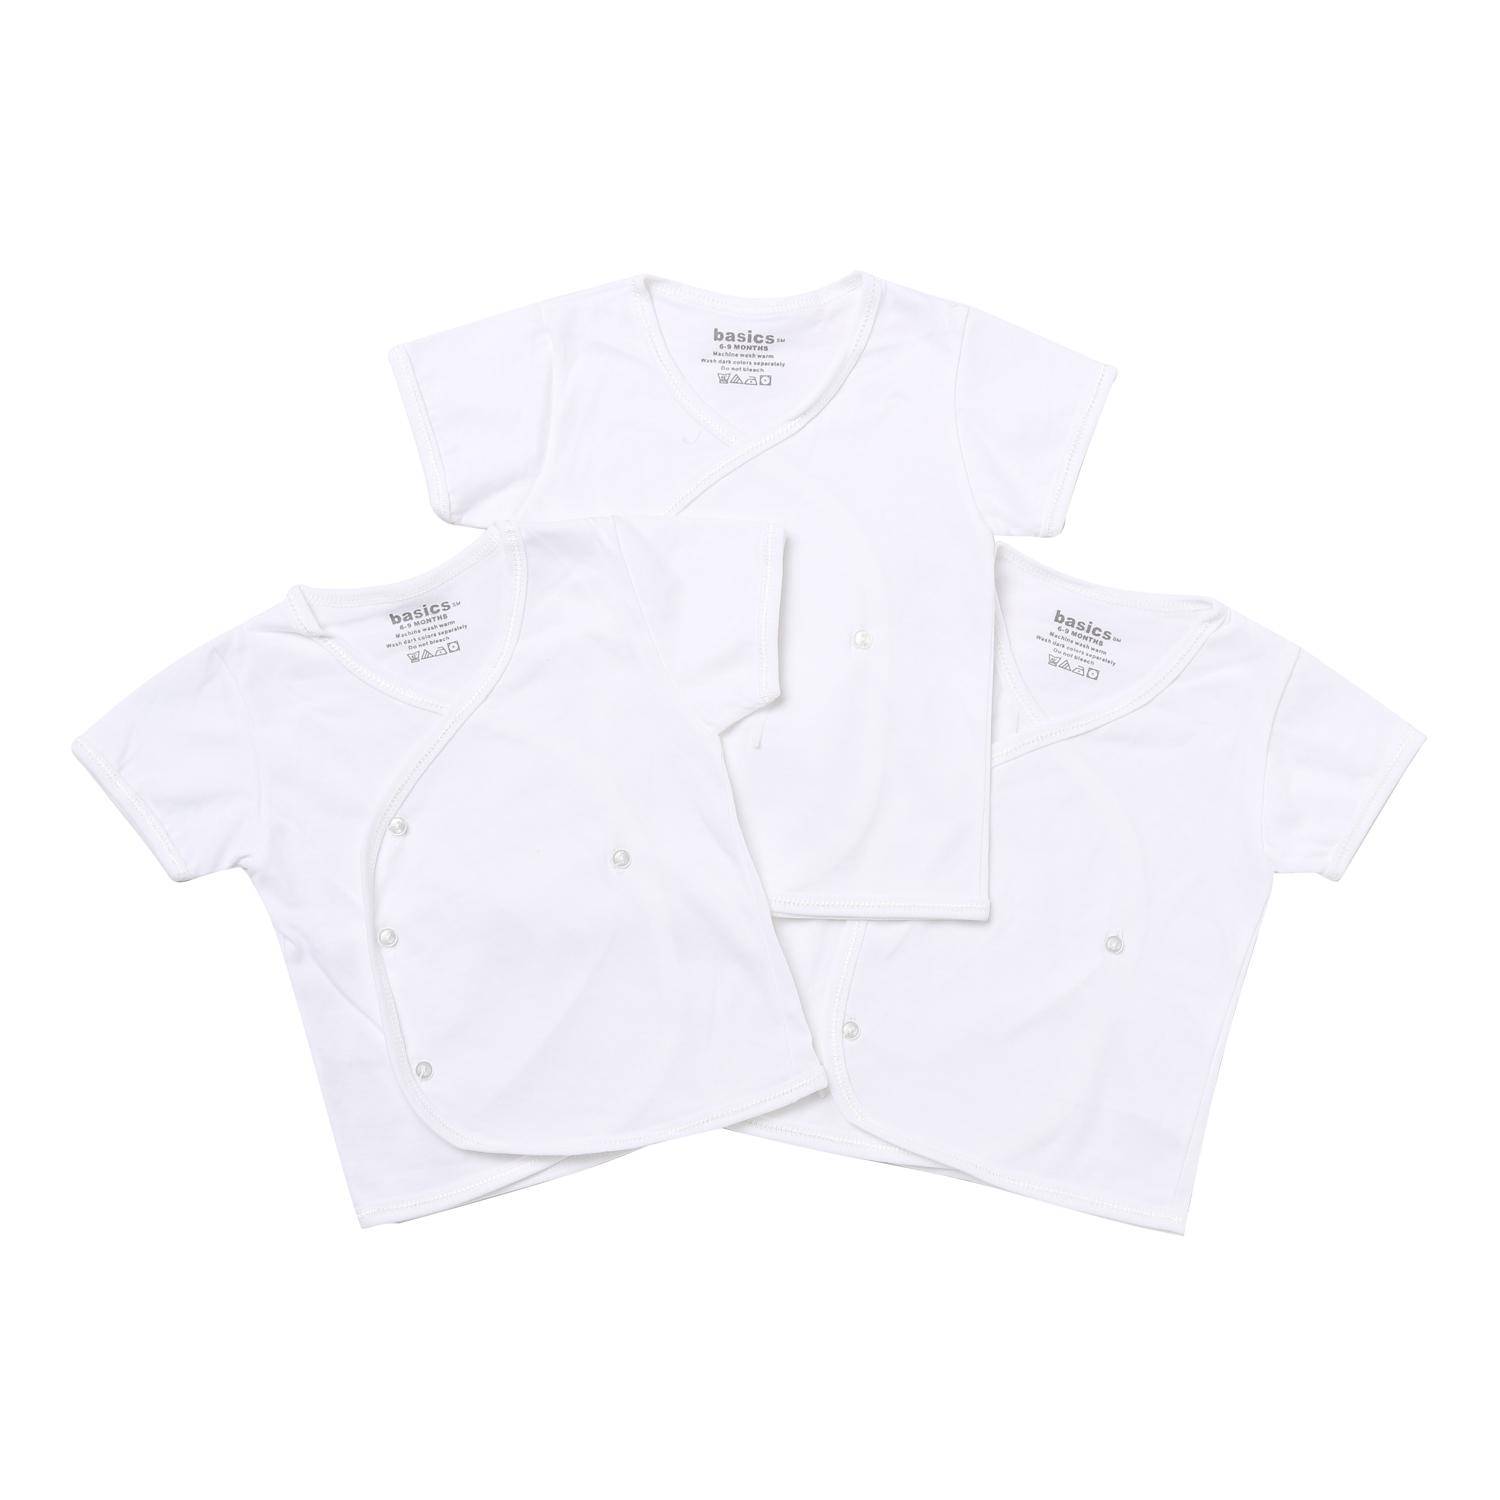 ccee84030e54 Newborn Baby Clothing for sale - Newborn Clothing Sets online brands ...